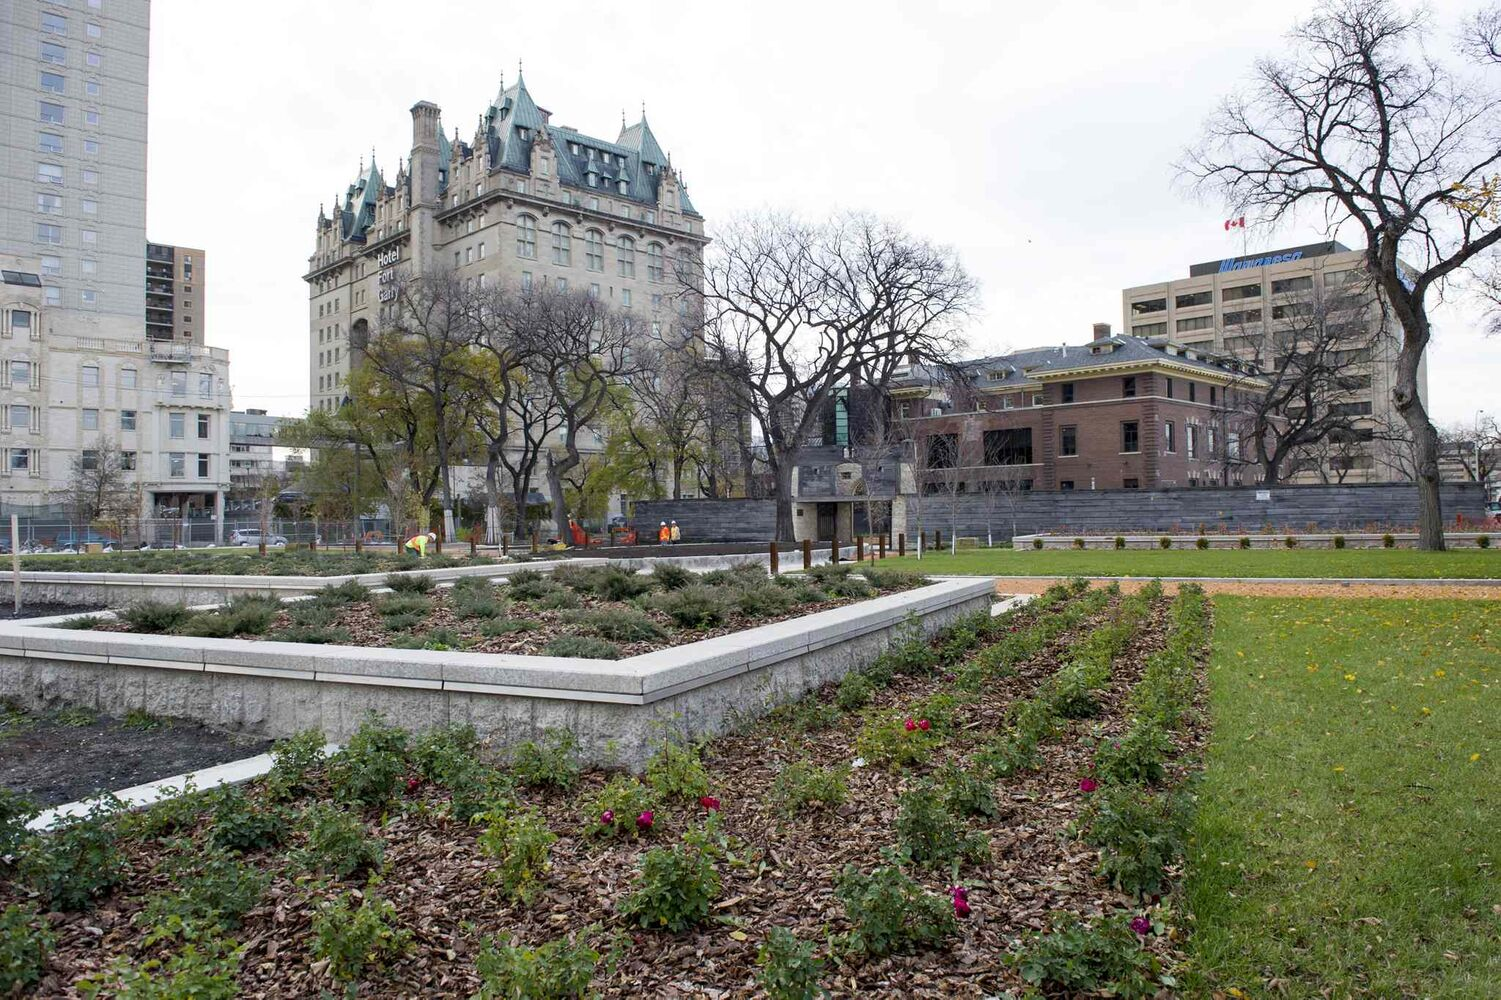 The grounds of Upper Fort Garry are groomed in preparation for Saturday's opening. (DAVID LIPNOWSKI / WINNIPEG FREE PRESS)